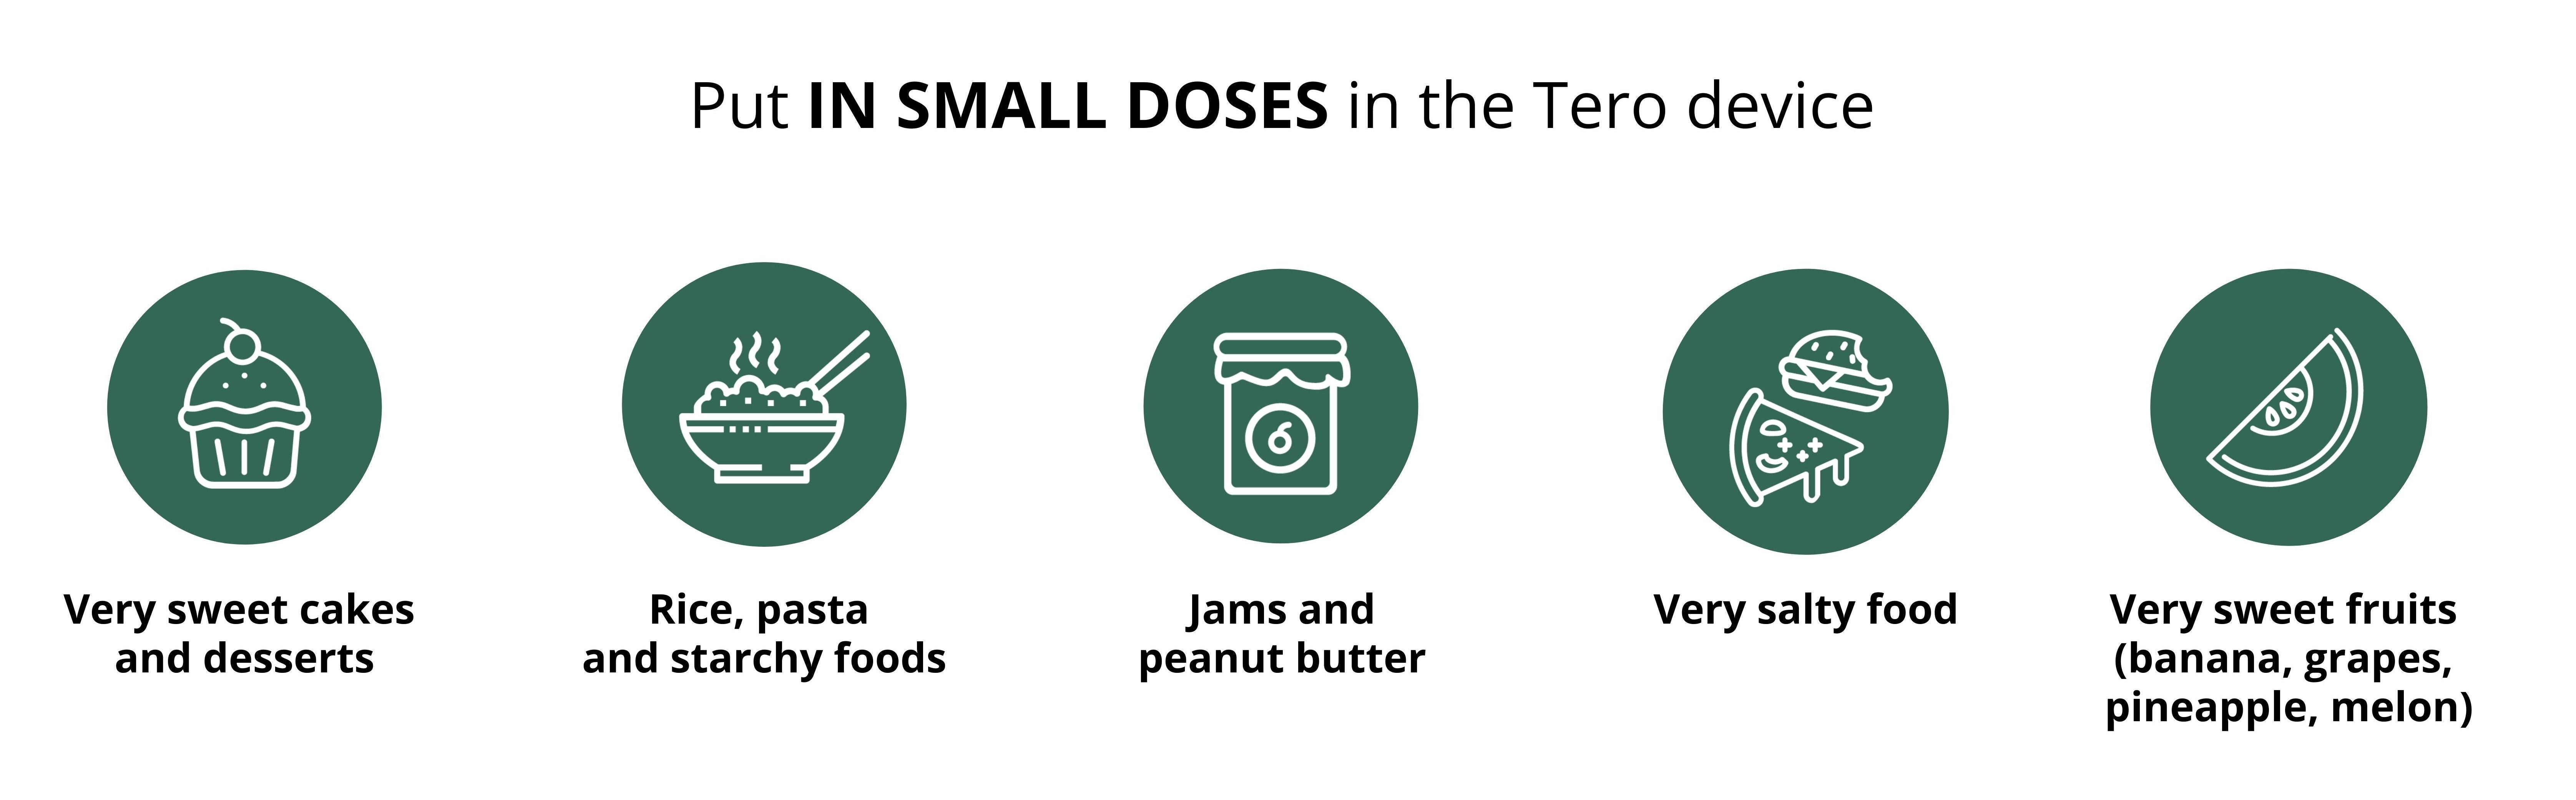 Foods that you can put in small doses in the Tero device